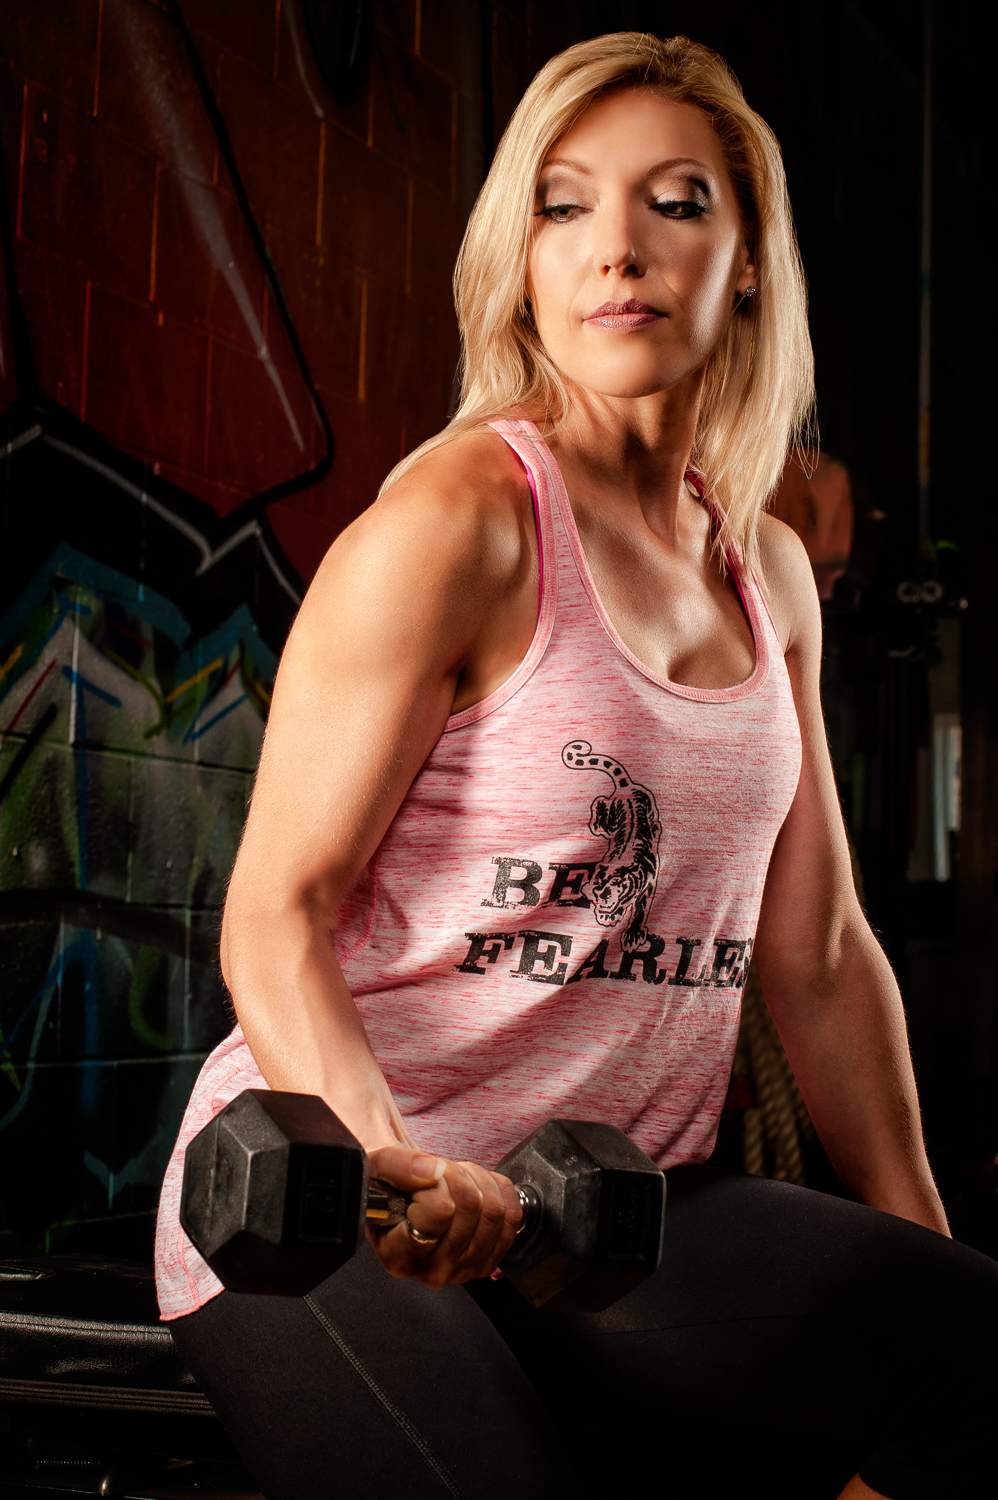 Hamilton Toronto Fitness Photographer - Metamorfose Clothing Line Be Fearless Pink by Marek Michalek.jpg